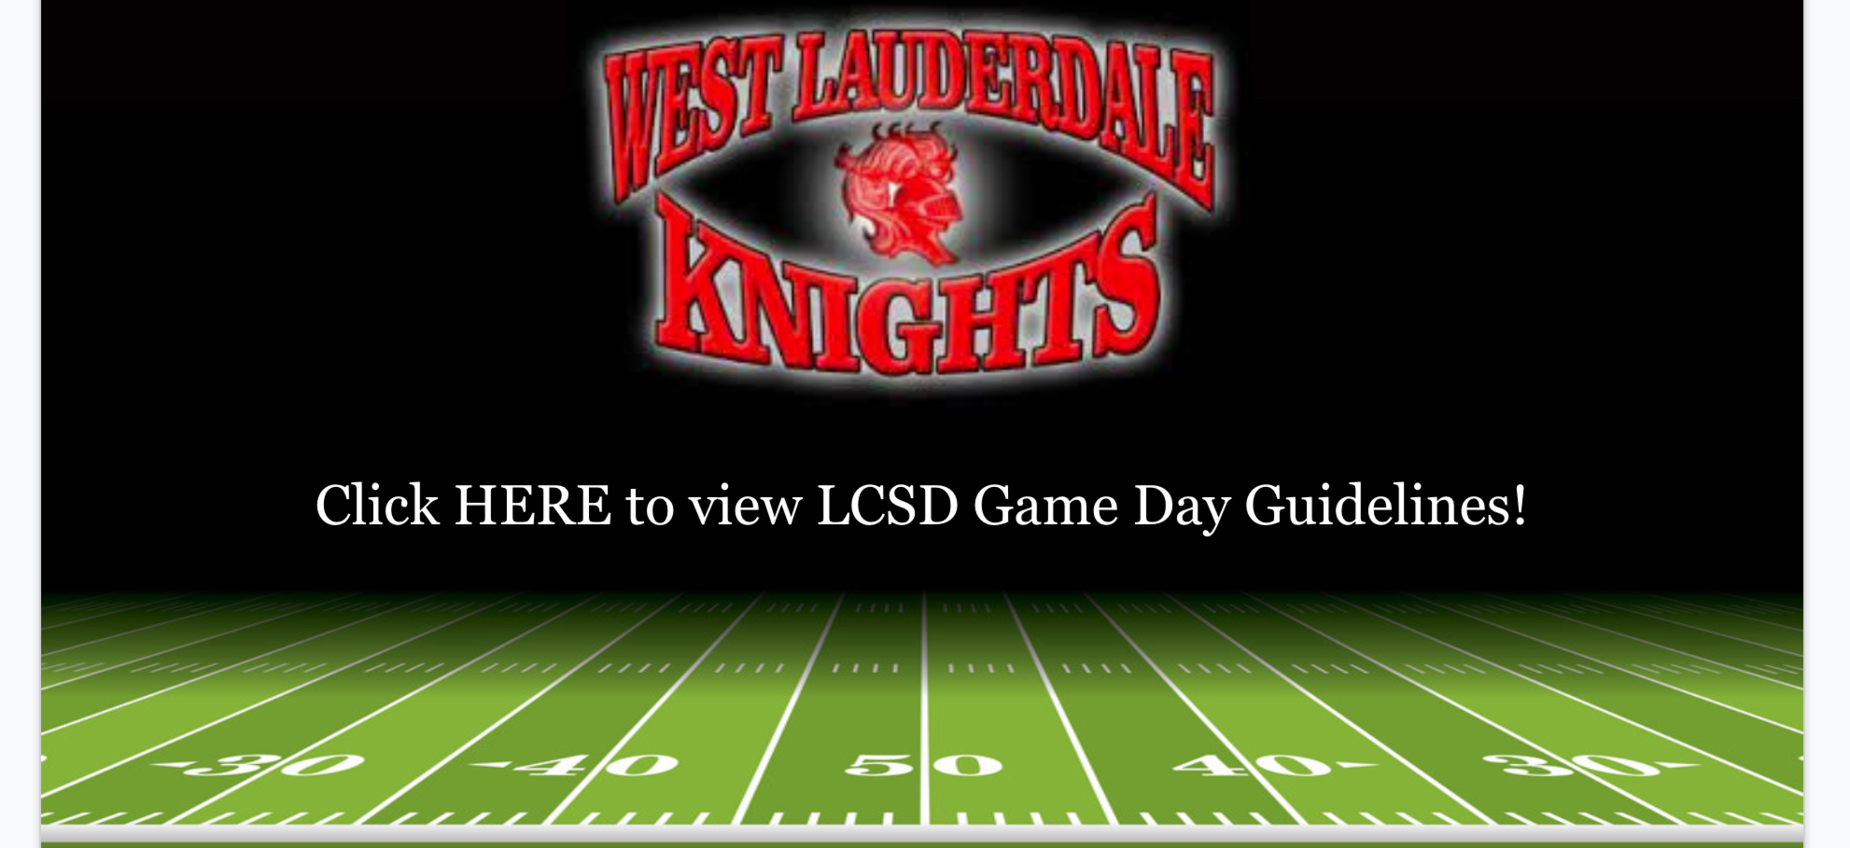 Click image to see LCSD Game Day Guidelines